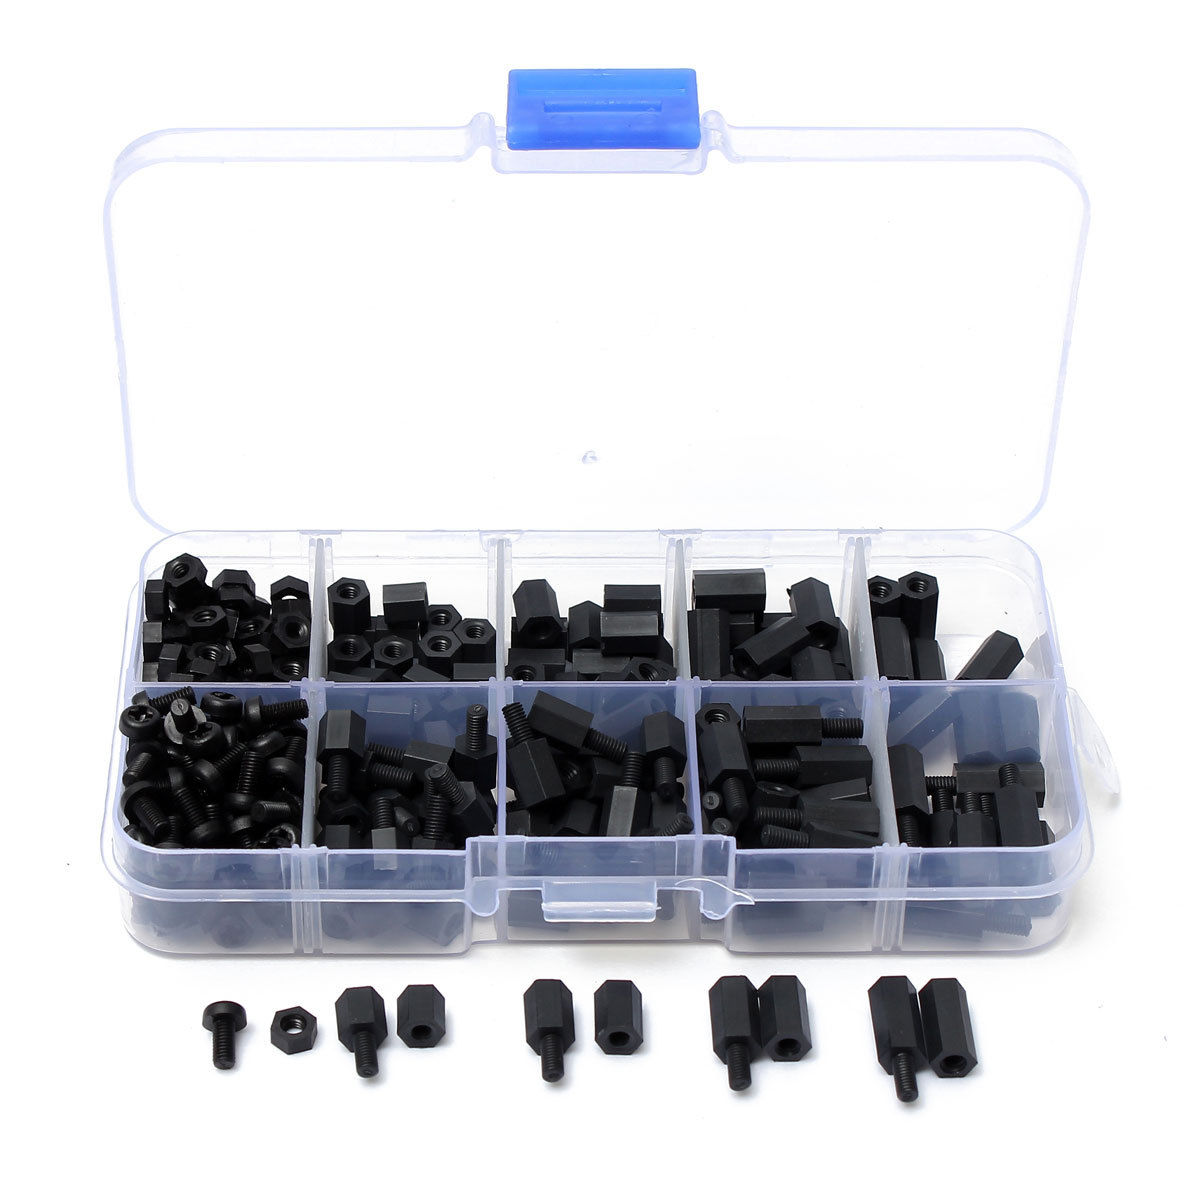 Promotion! 300pcs M3 Nylon Black M-F Hex Spacers Screw Nut Assortment Kit Stand-off Set best military blue laser pointers 100000mw 100w 450nm burning match dry wood candle black burn cigarette 5 caps glasses gift box